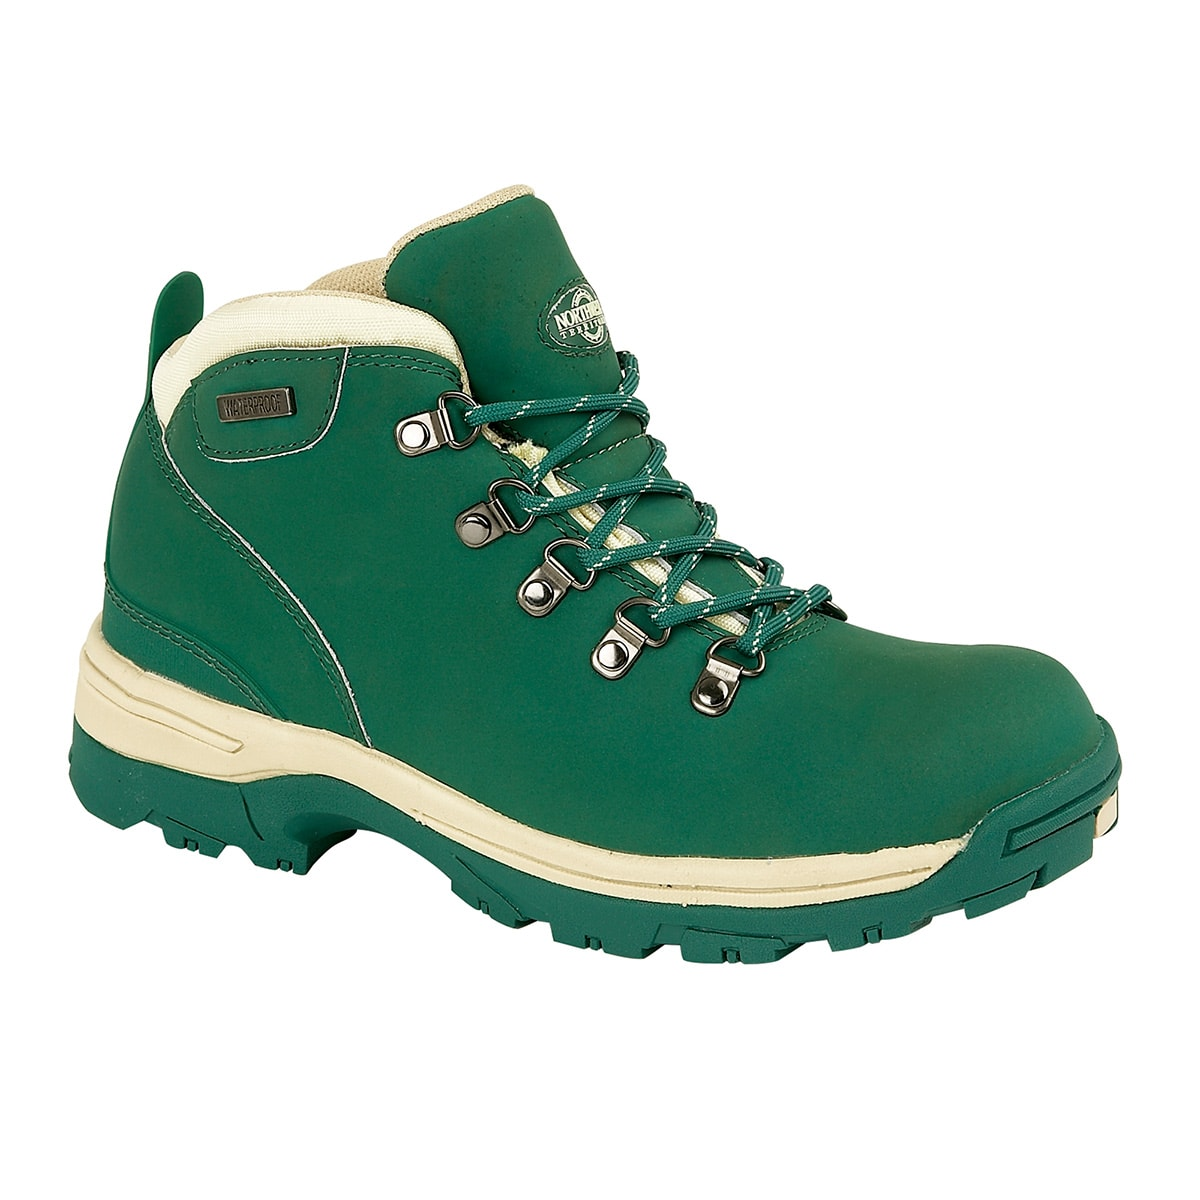 e07fd0e808f Northwest Territory | Ladies Hiking Boots | Mens Hiking Boots